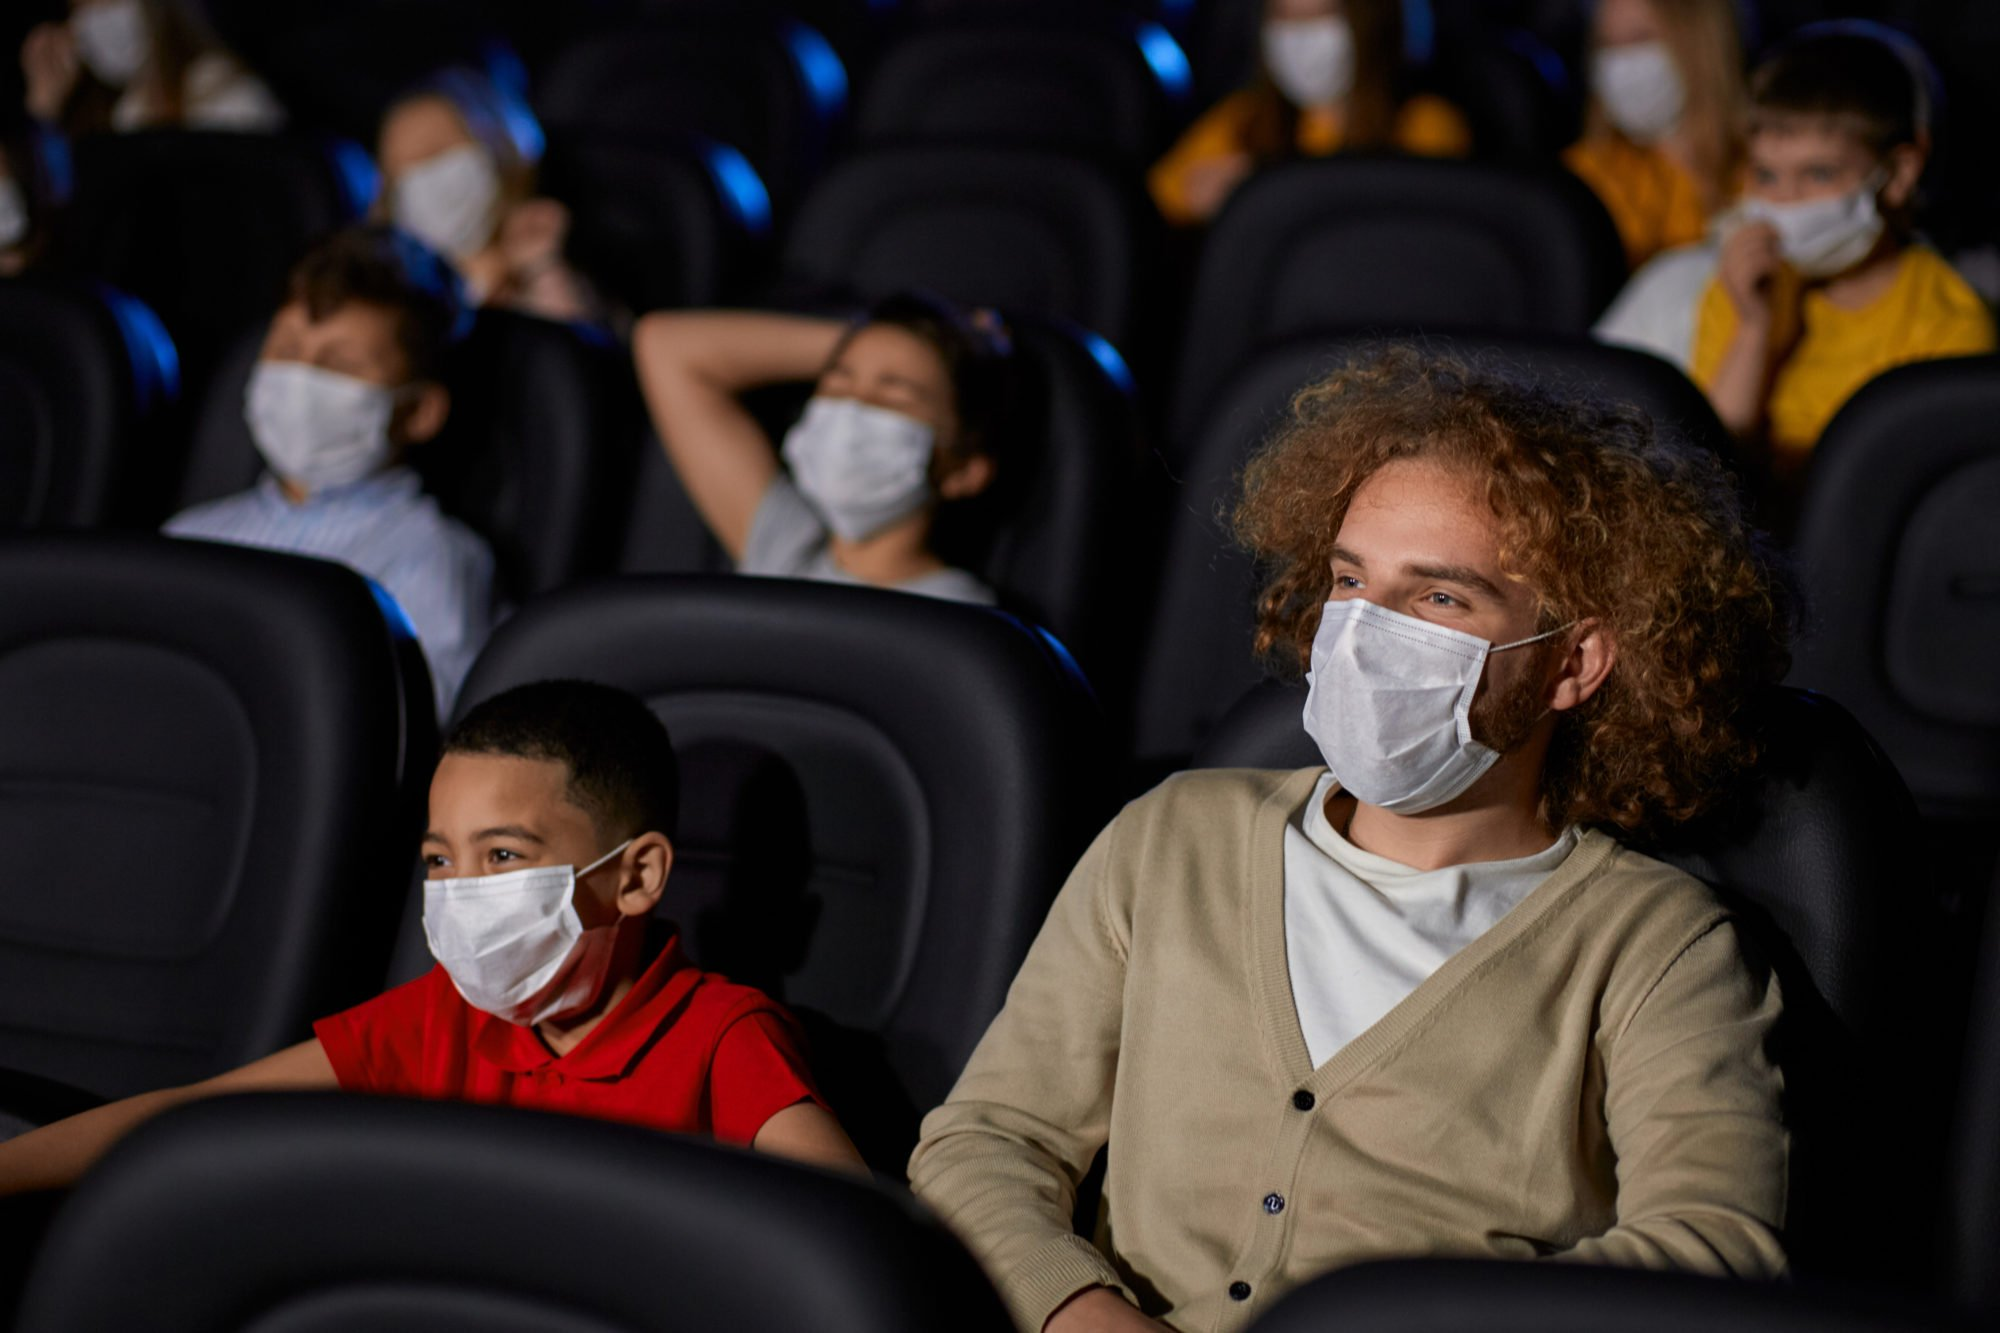 How to Rent a Movie Theater